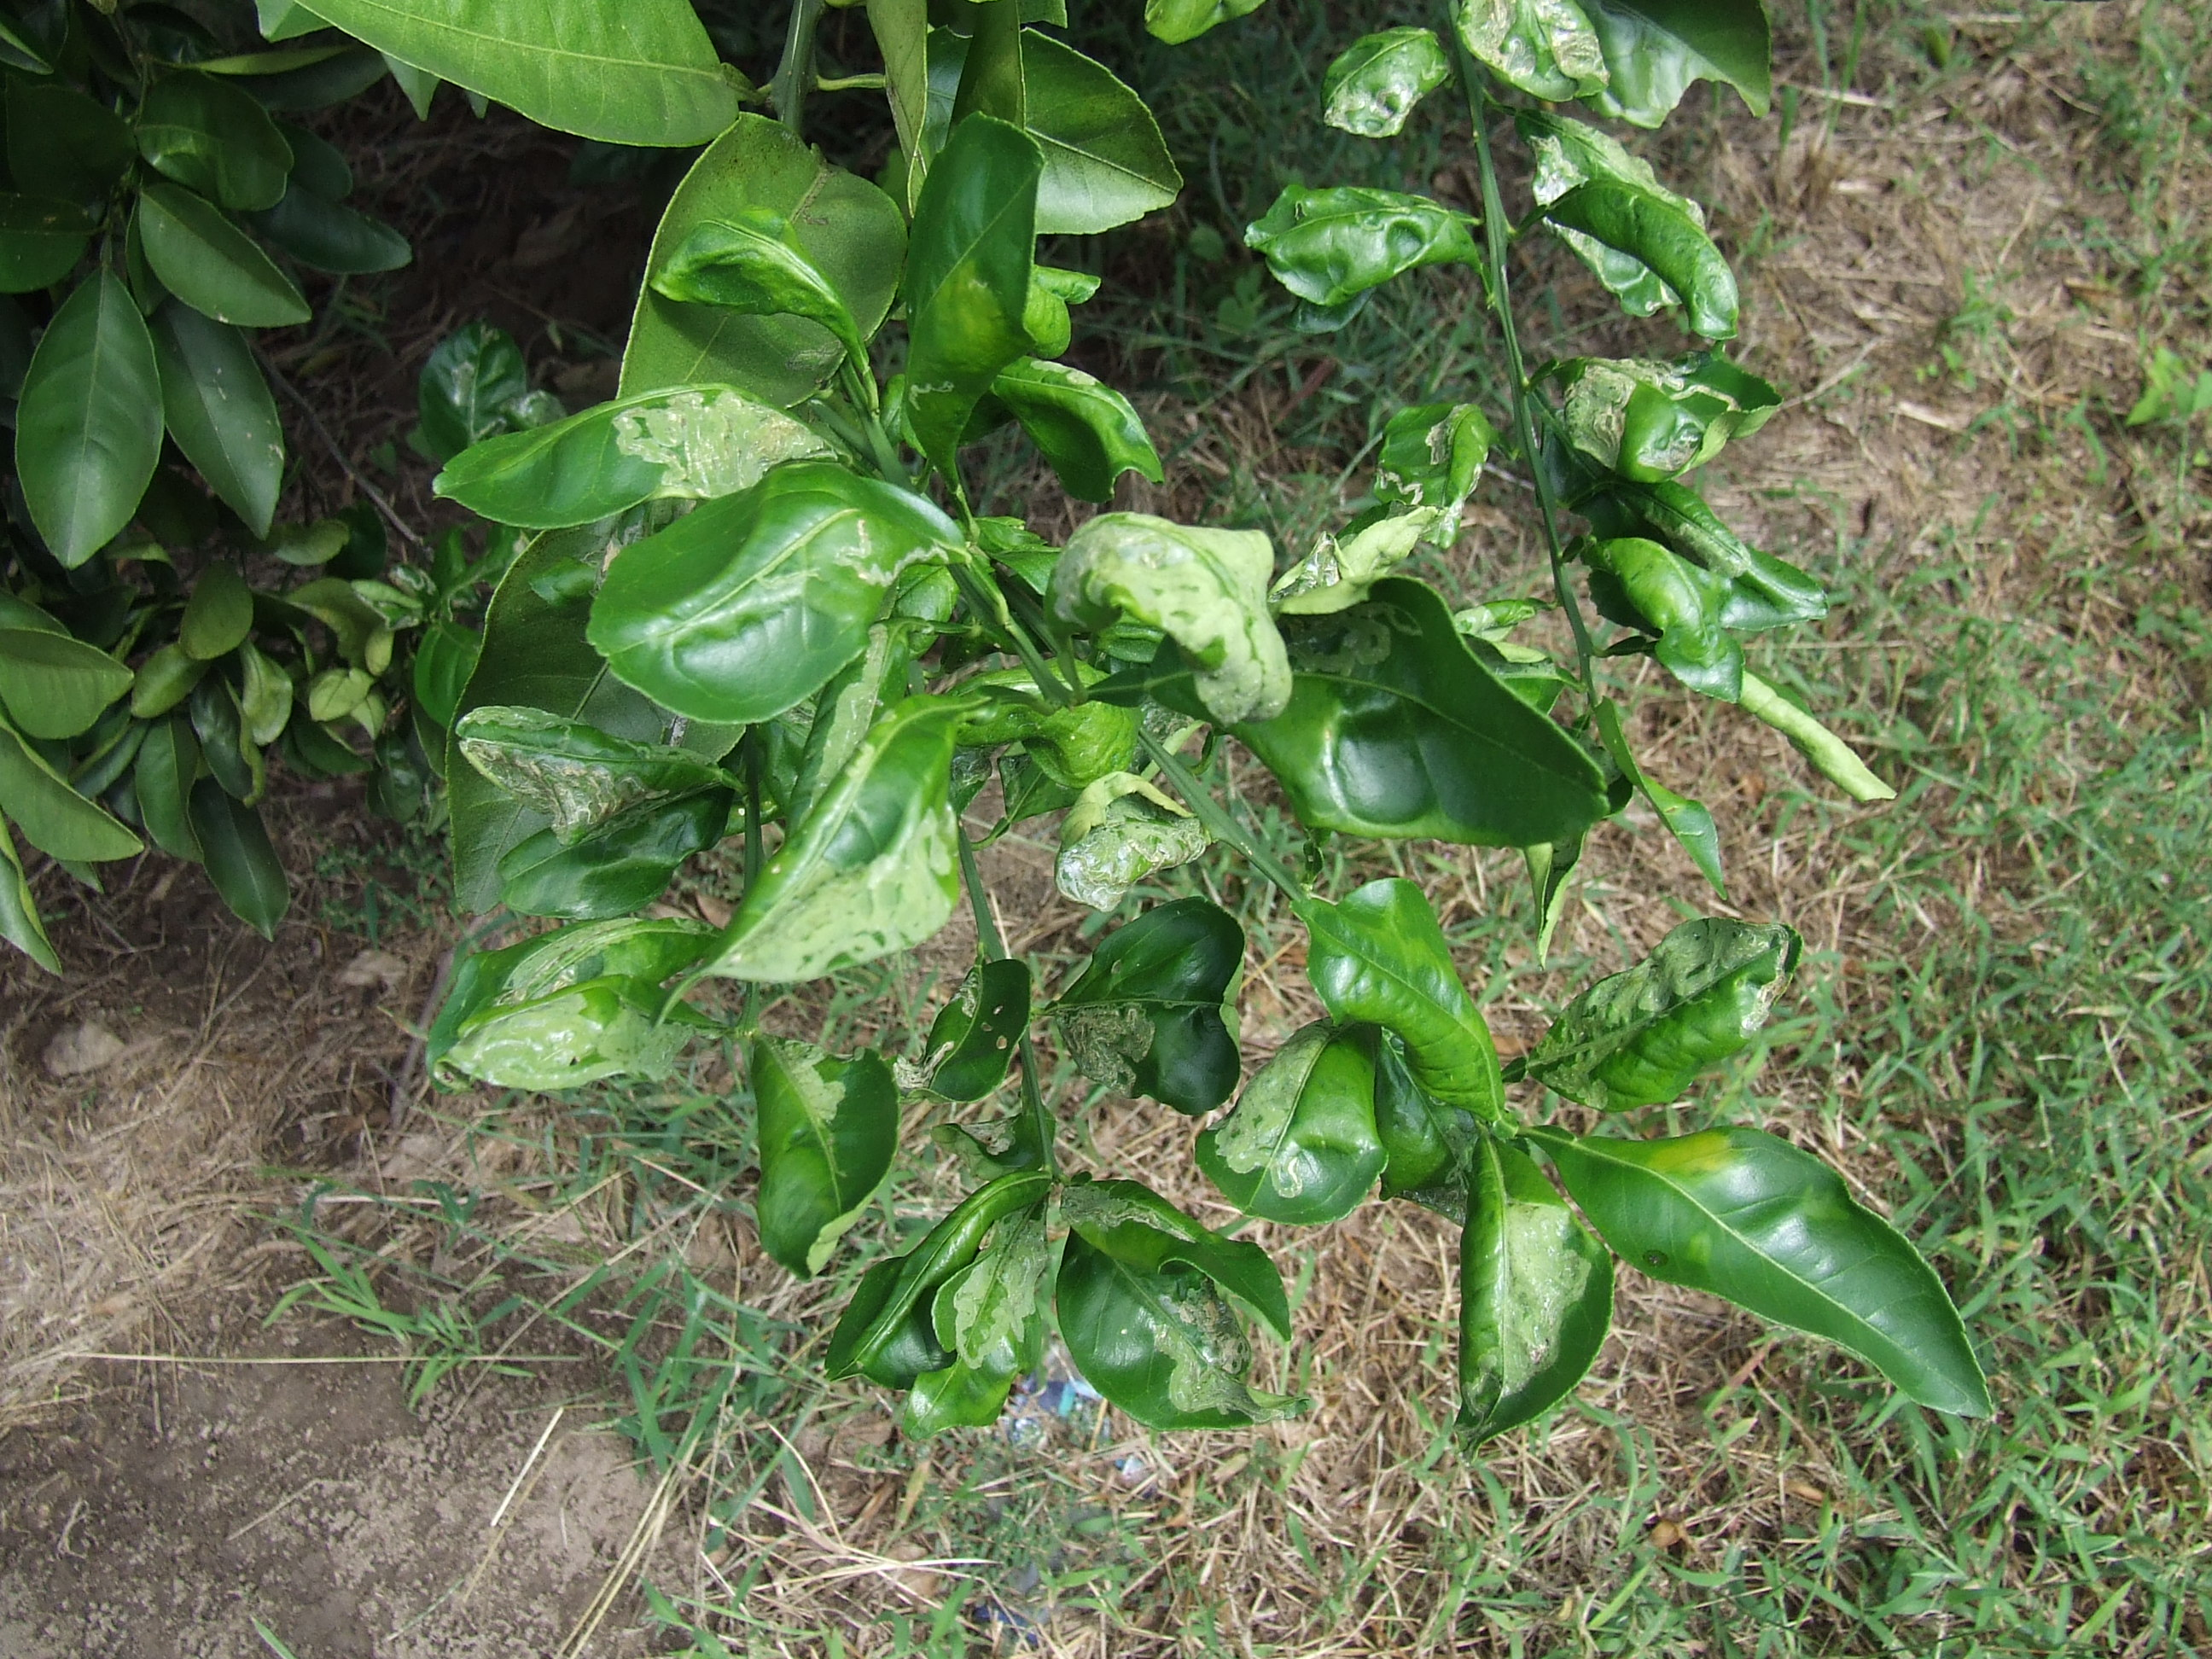 How to scout for the citrus leafminer